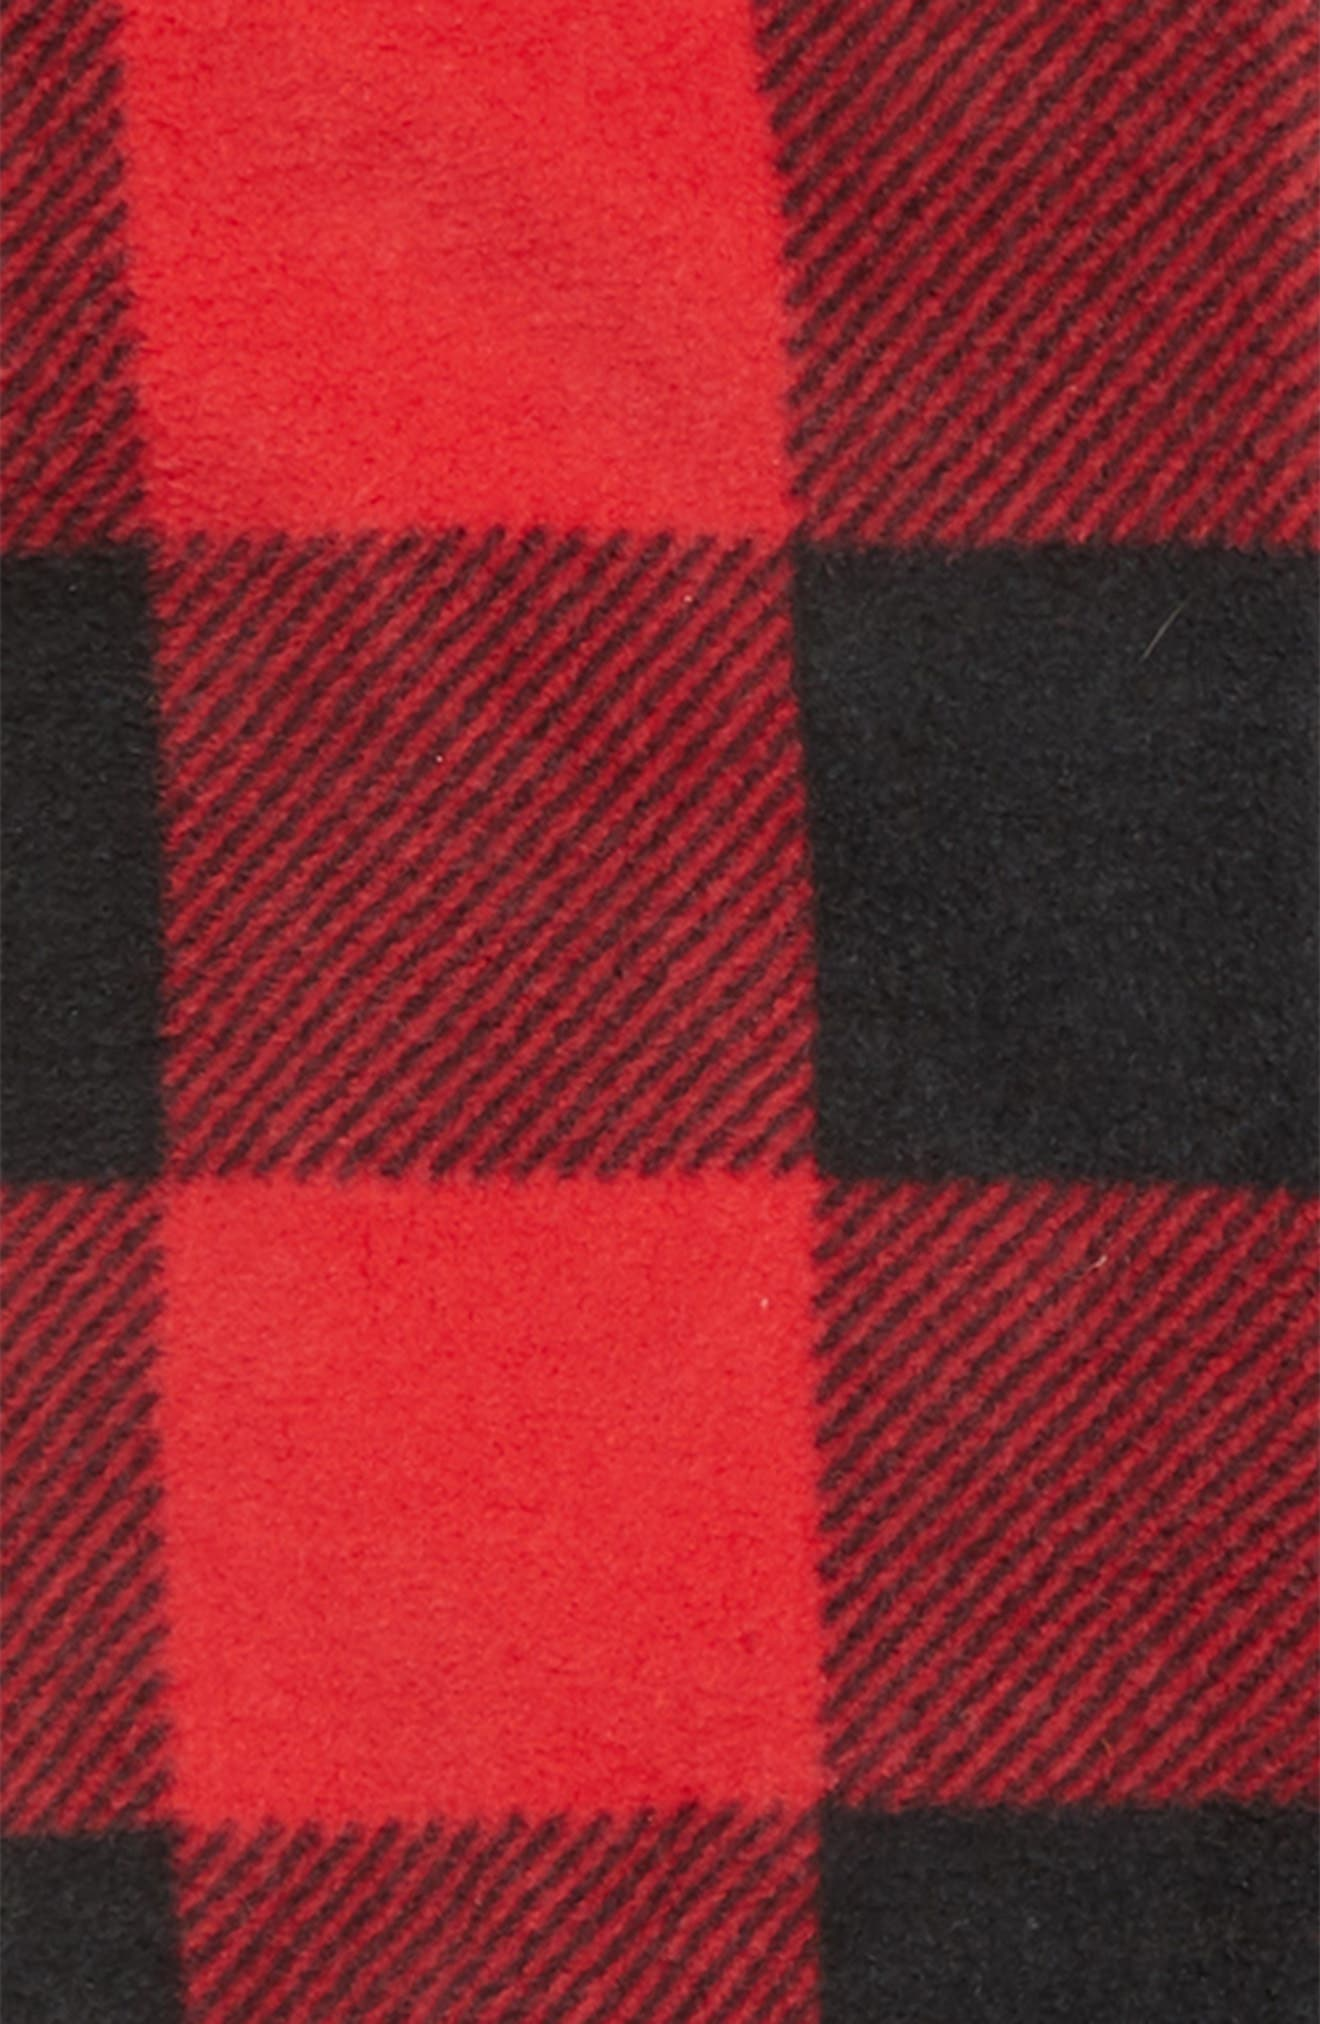 Plaid One-Piece Pajamas,                             Alternate thumbnail 2, color,                             RED BLOOM LARGE BUFFALO CHECK